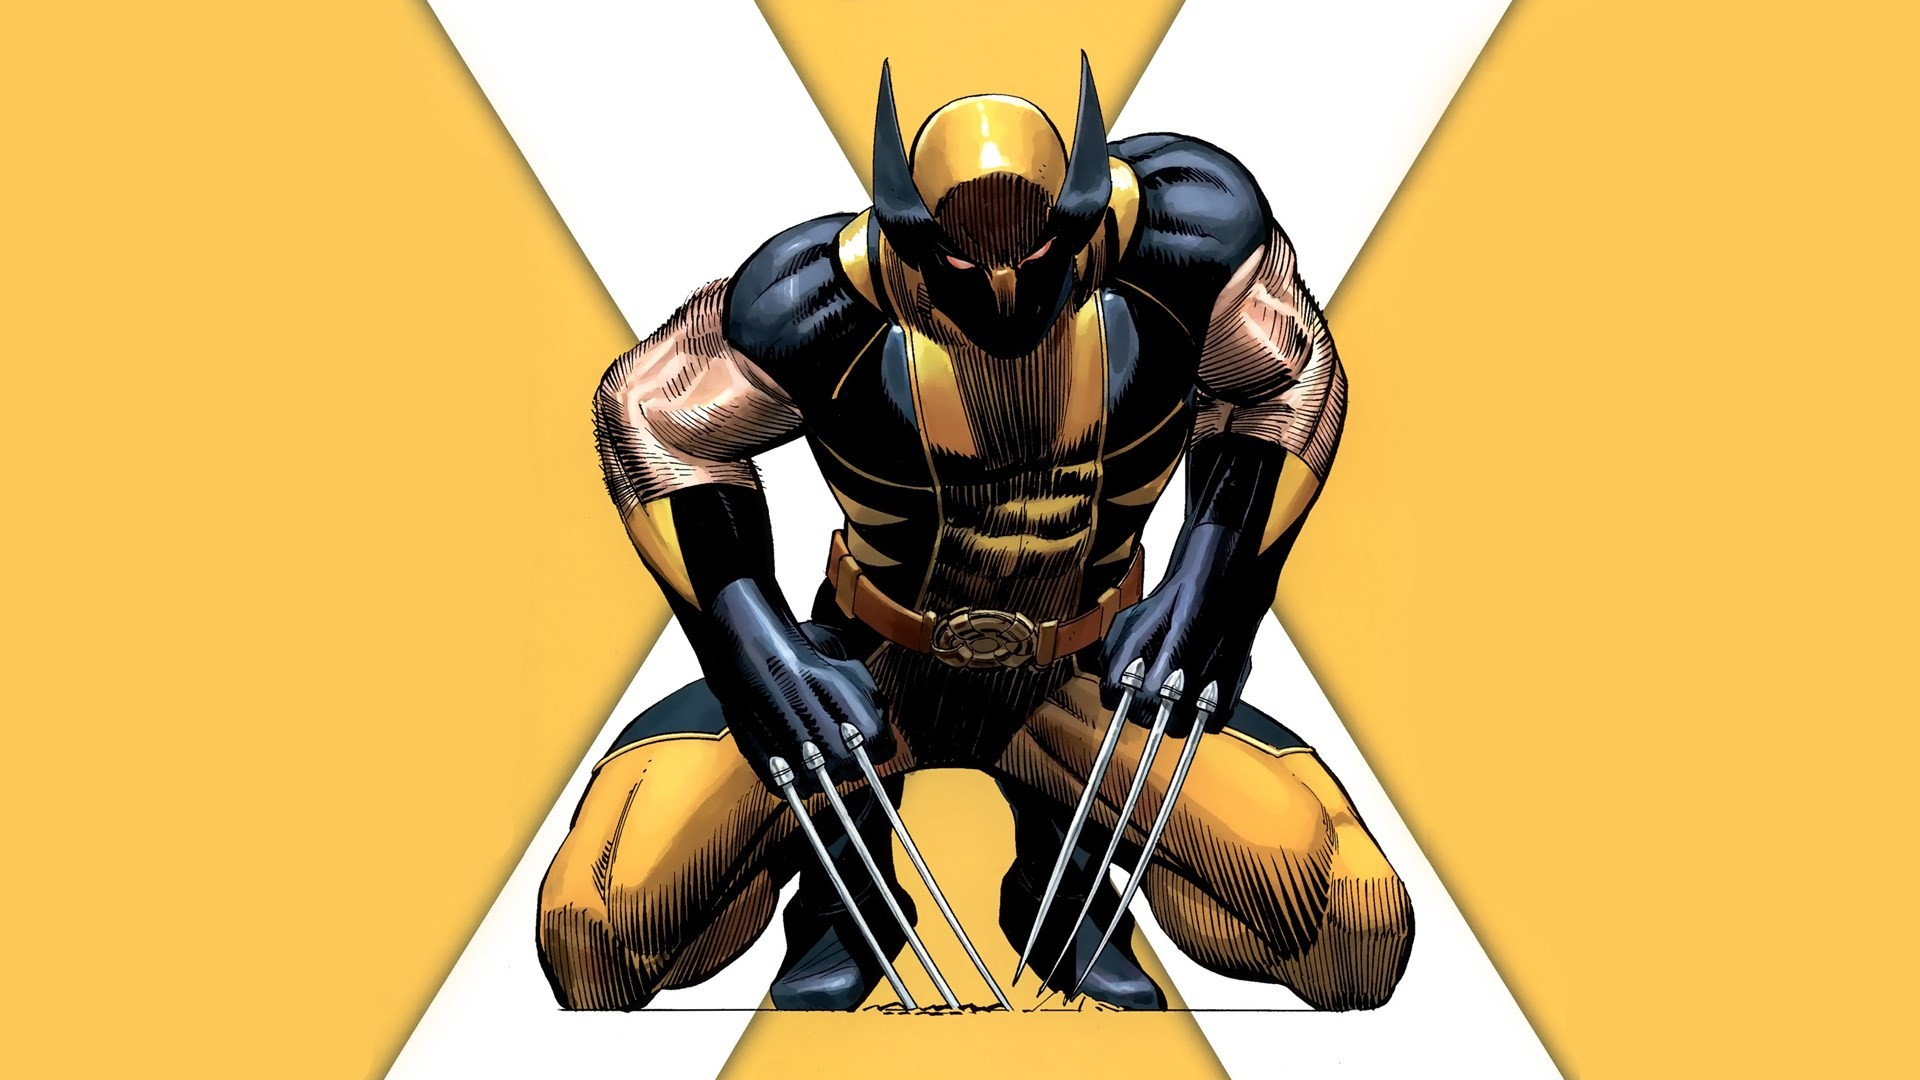 1920x1080 free desktop backgrounds for wolverine comic, 694 kB - Enola Edwards